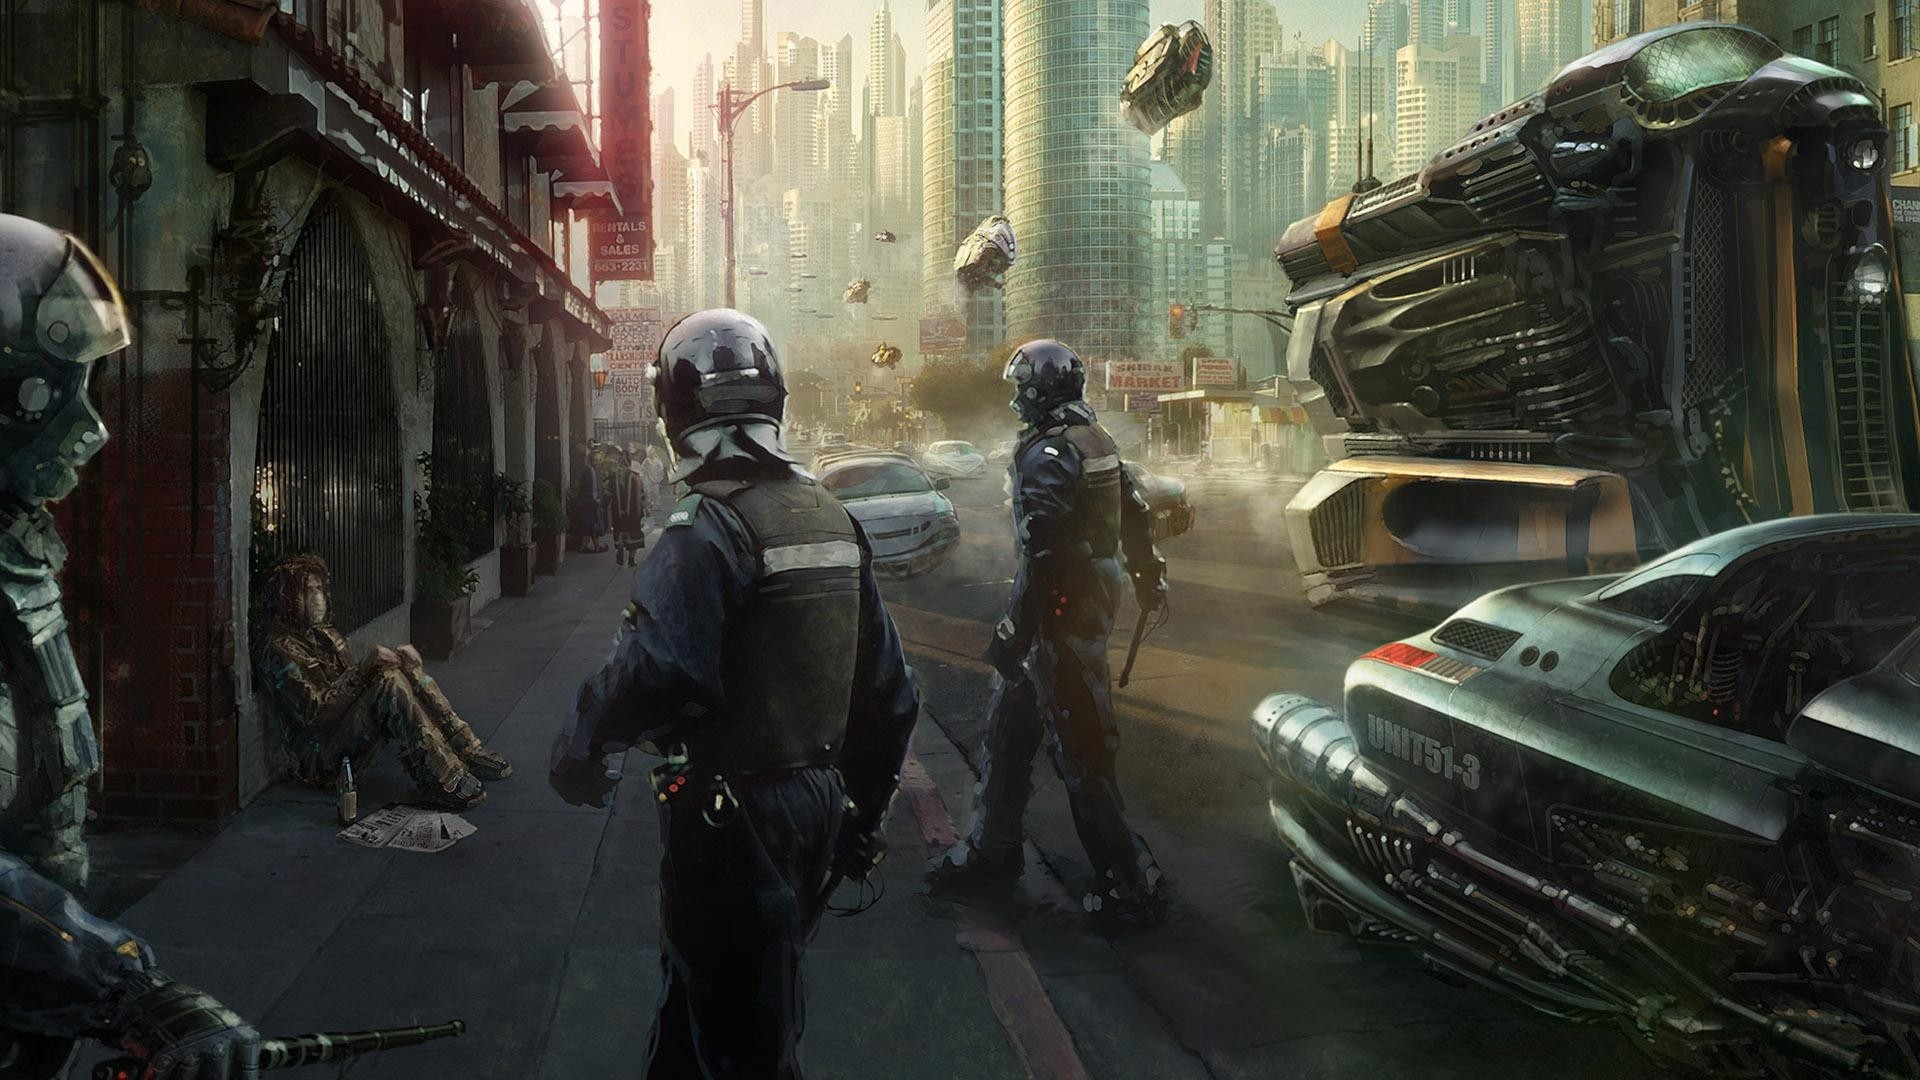 cityscapes_futuristic_cars_police_buildings_cyberpunk_science_fiction_artwork_police_interceptor_Wallpaper_1920x1080_www.wall321.com_.jpg